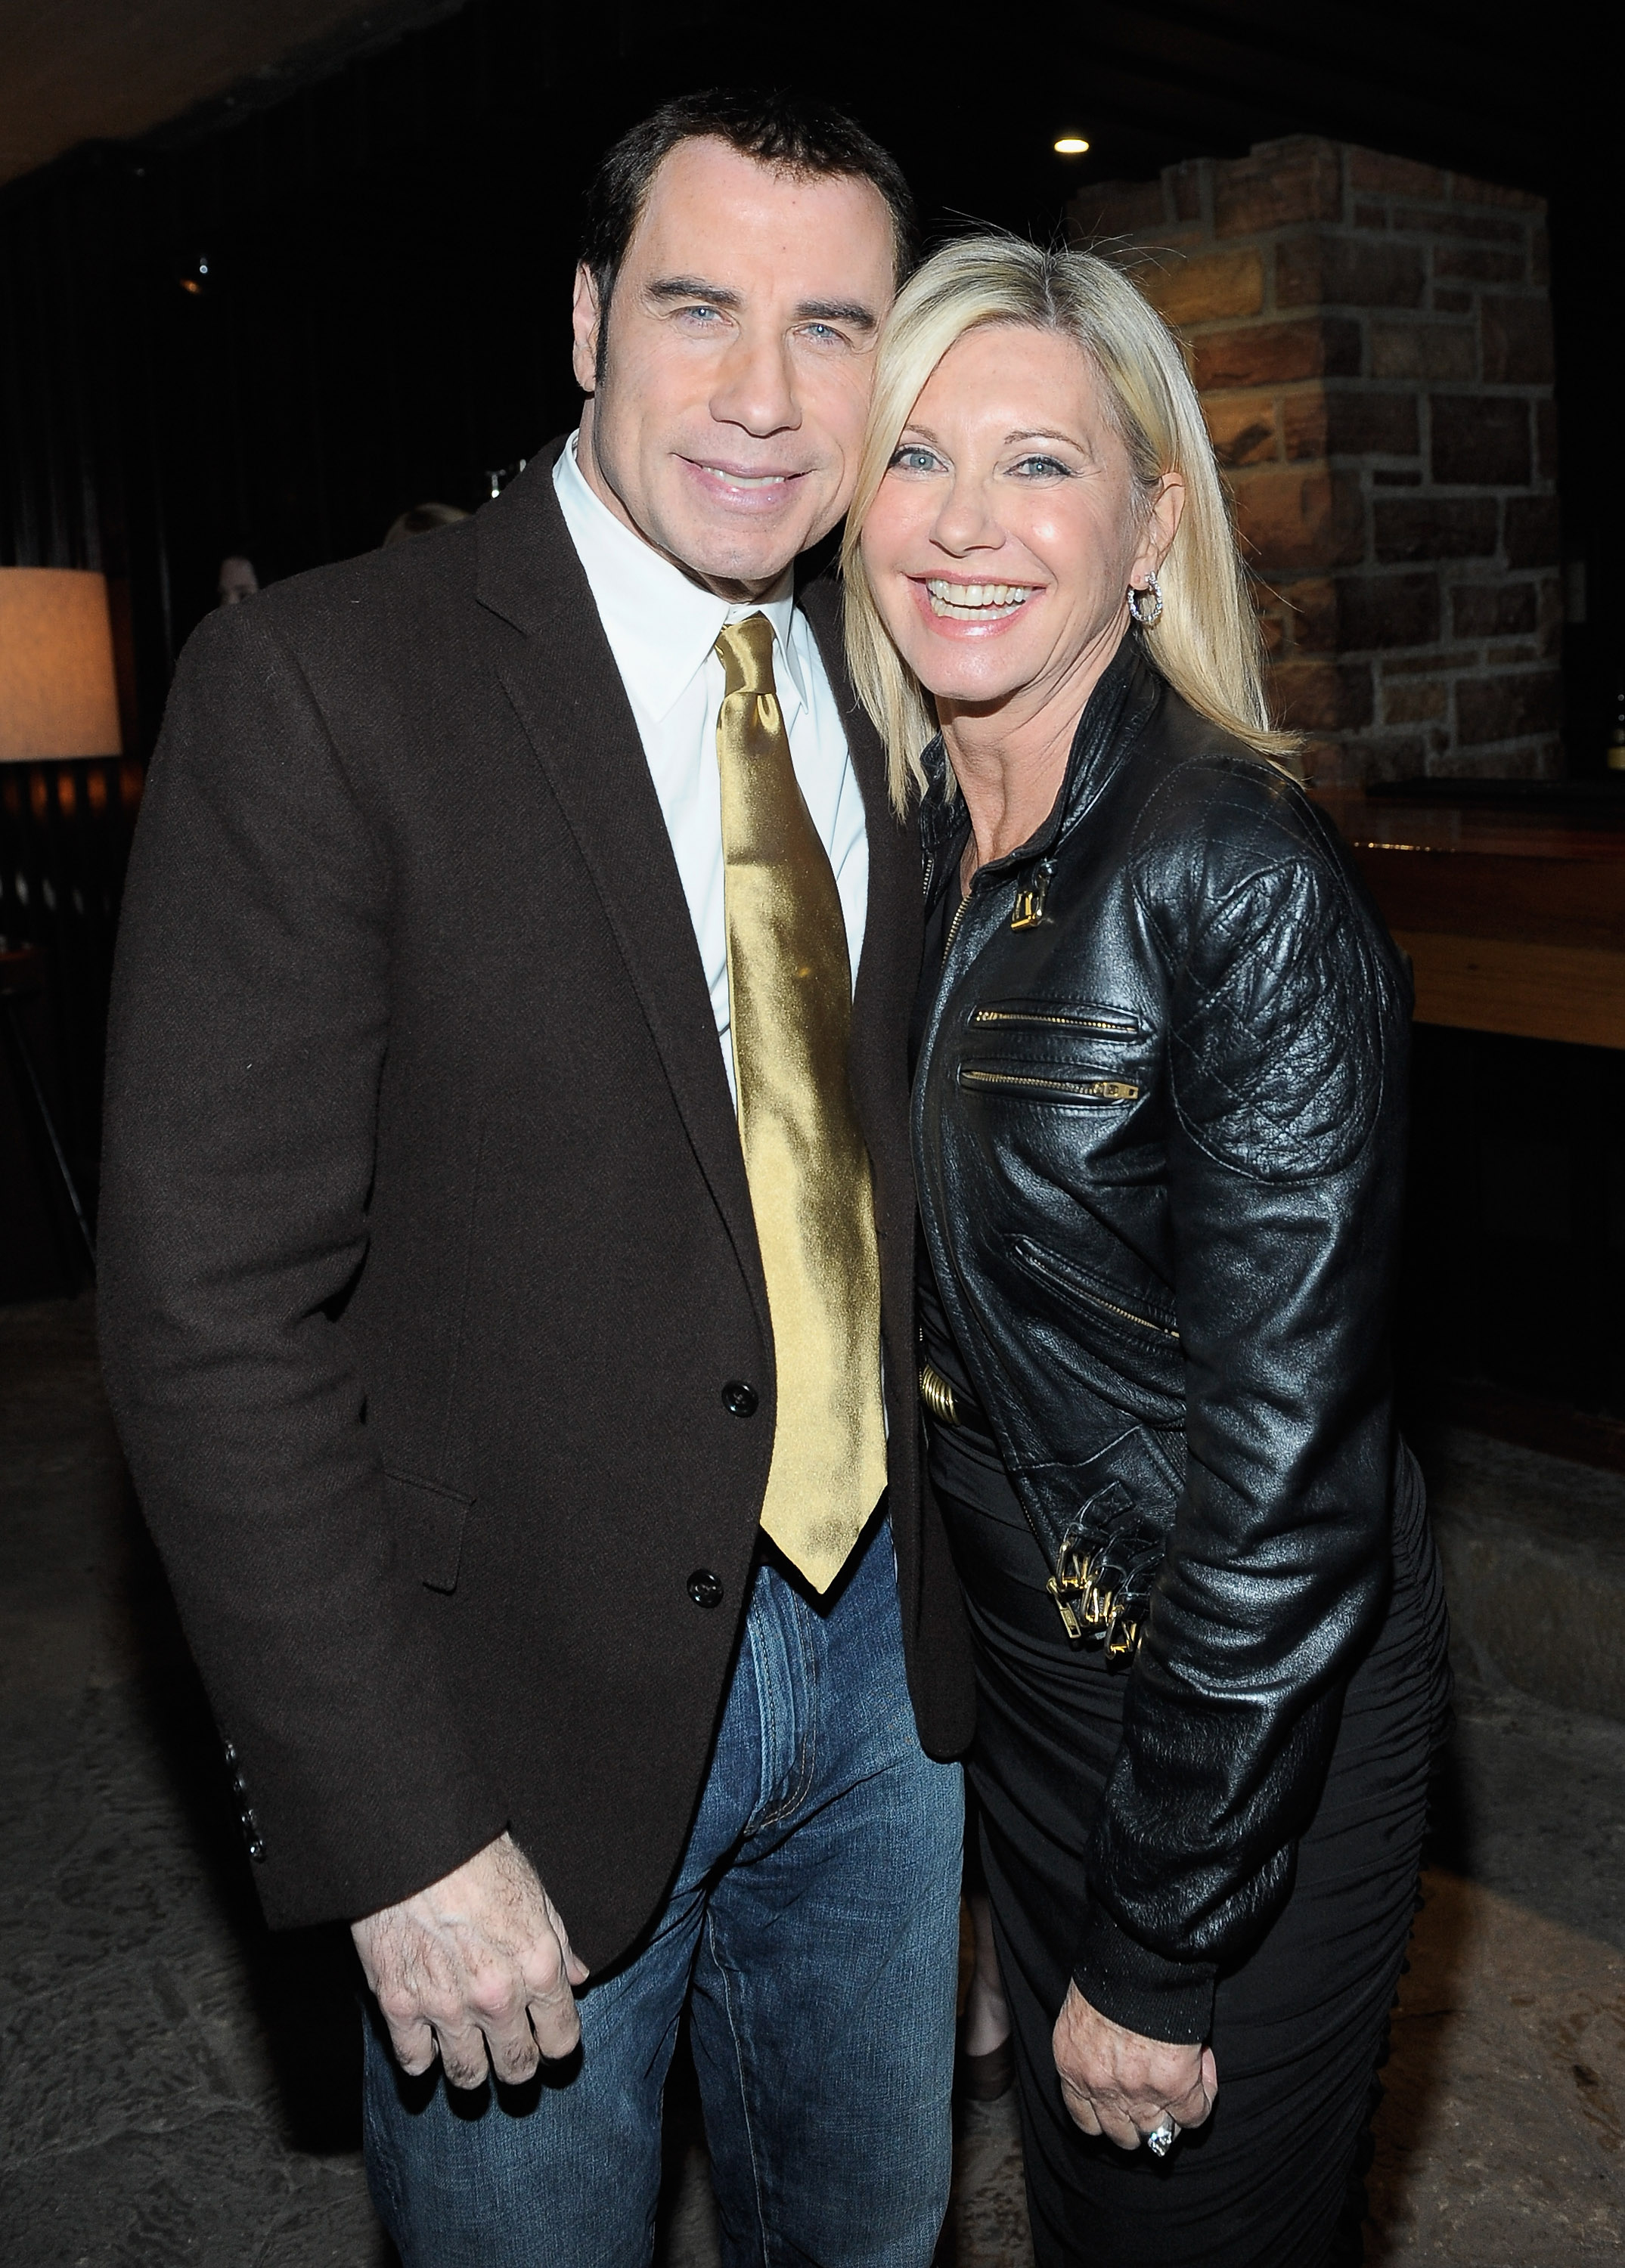 John Travolta and Olivia Newton John